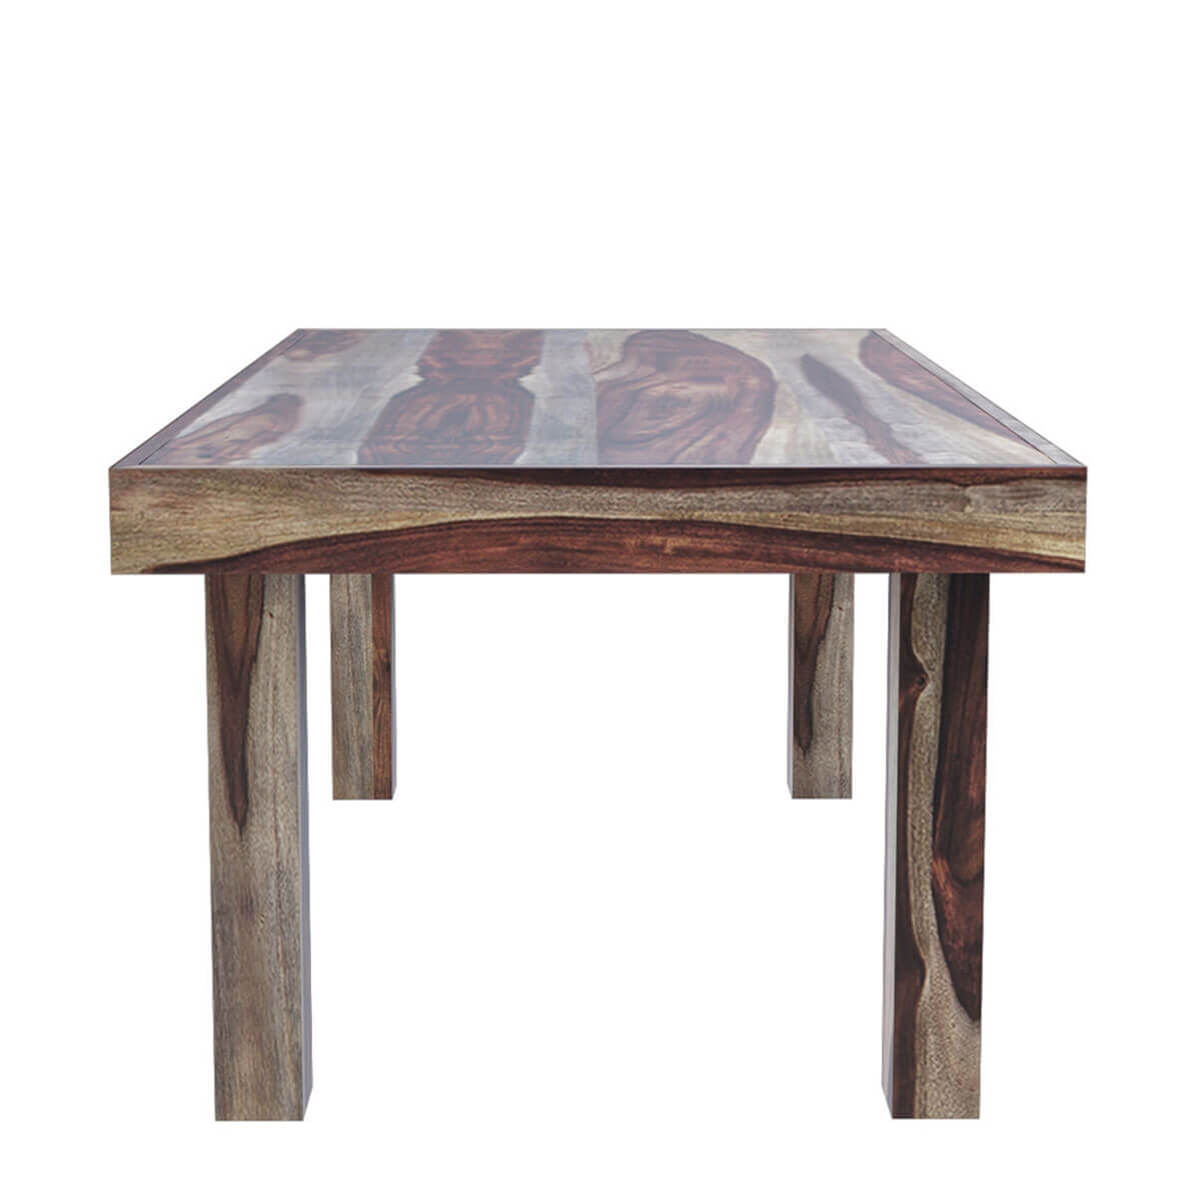 Frisco Modern Solid Wood Rectangular Rustic Dining Room Table